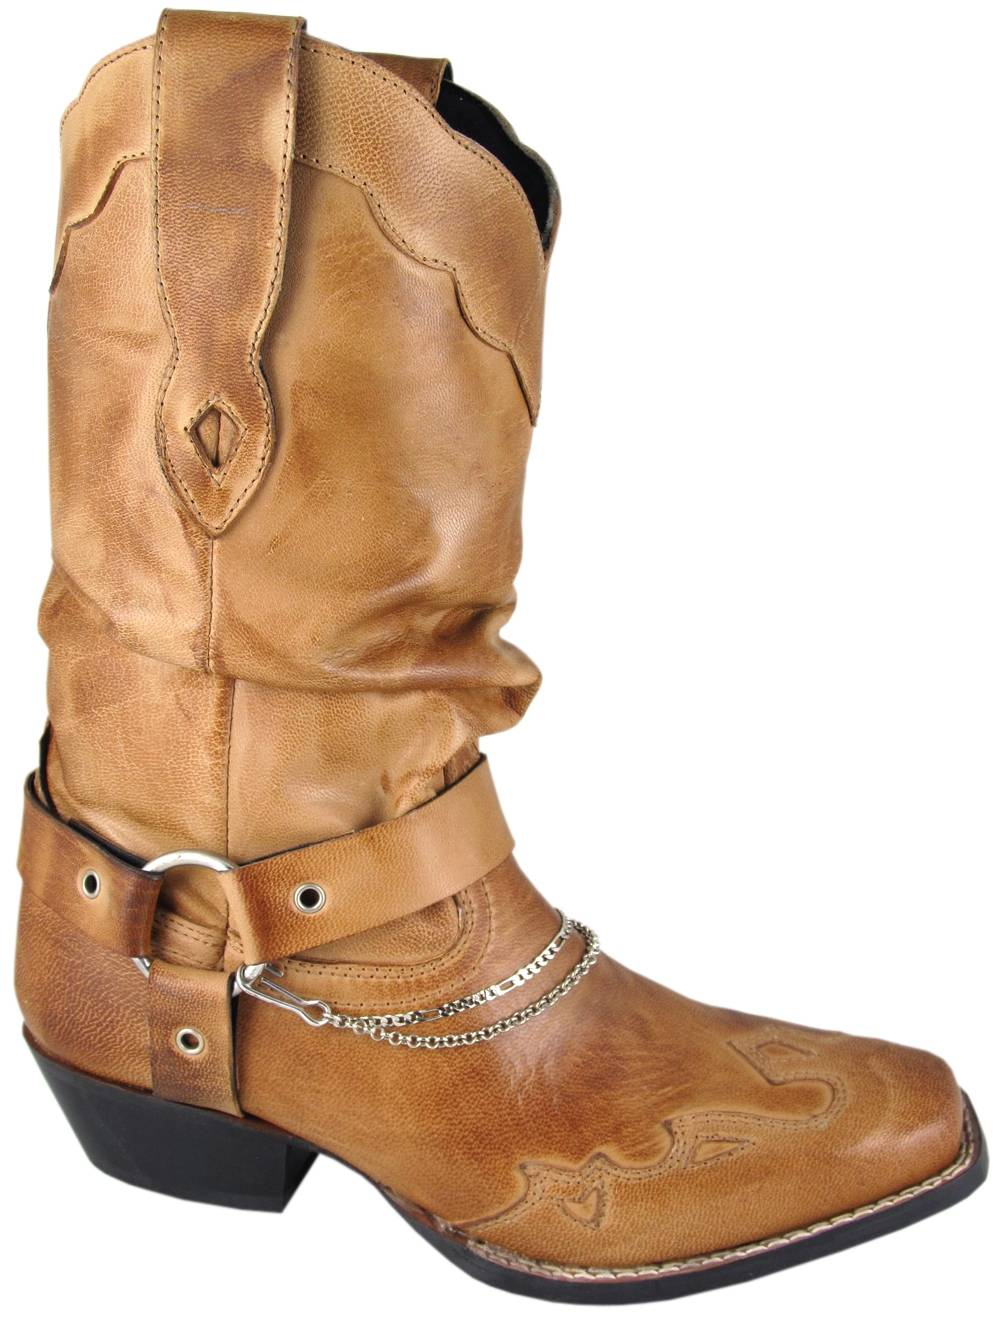 Smoky Mountain Avalon Slouch Western Boots - Ladies, Brown